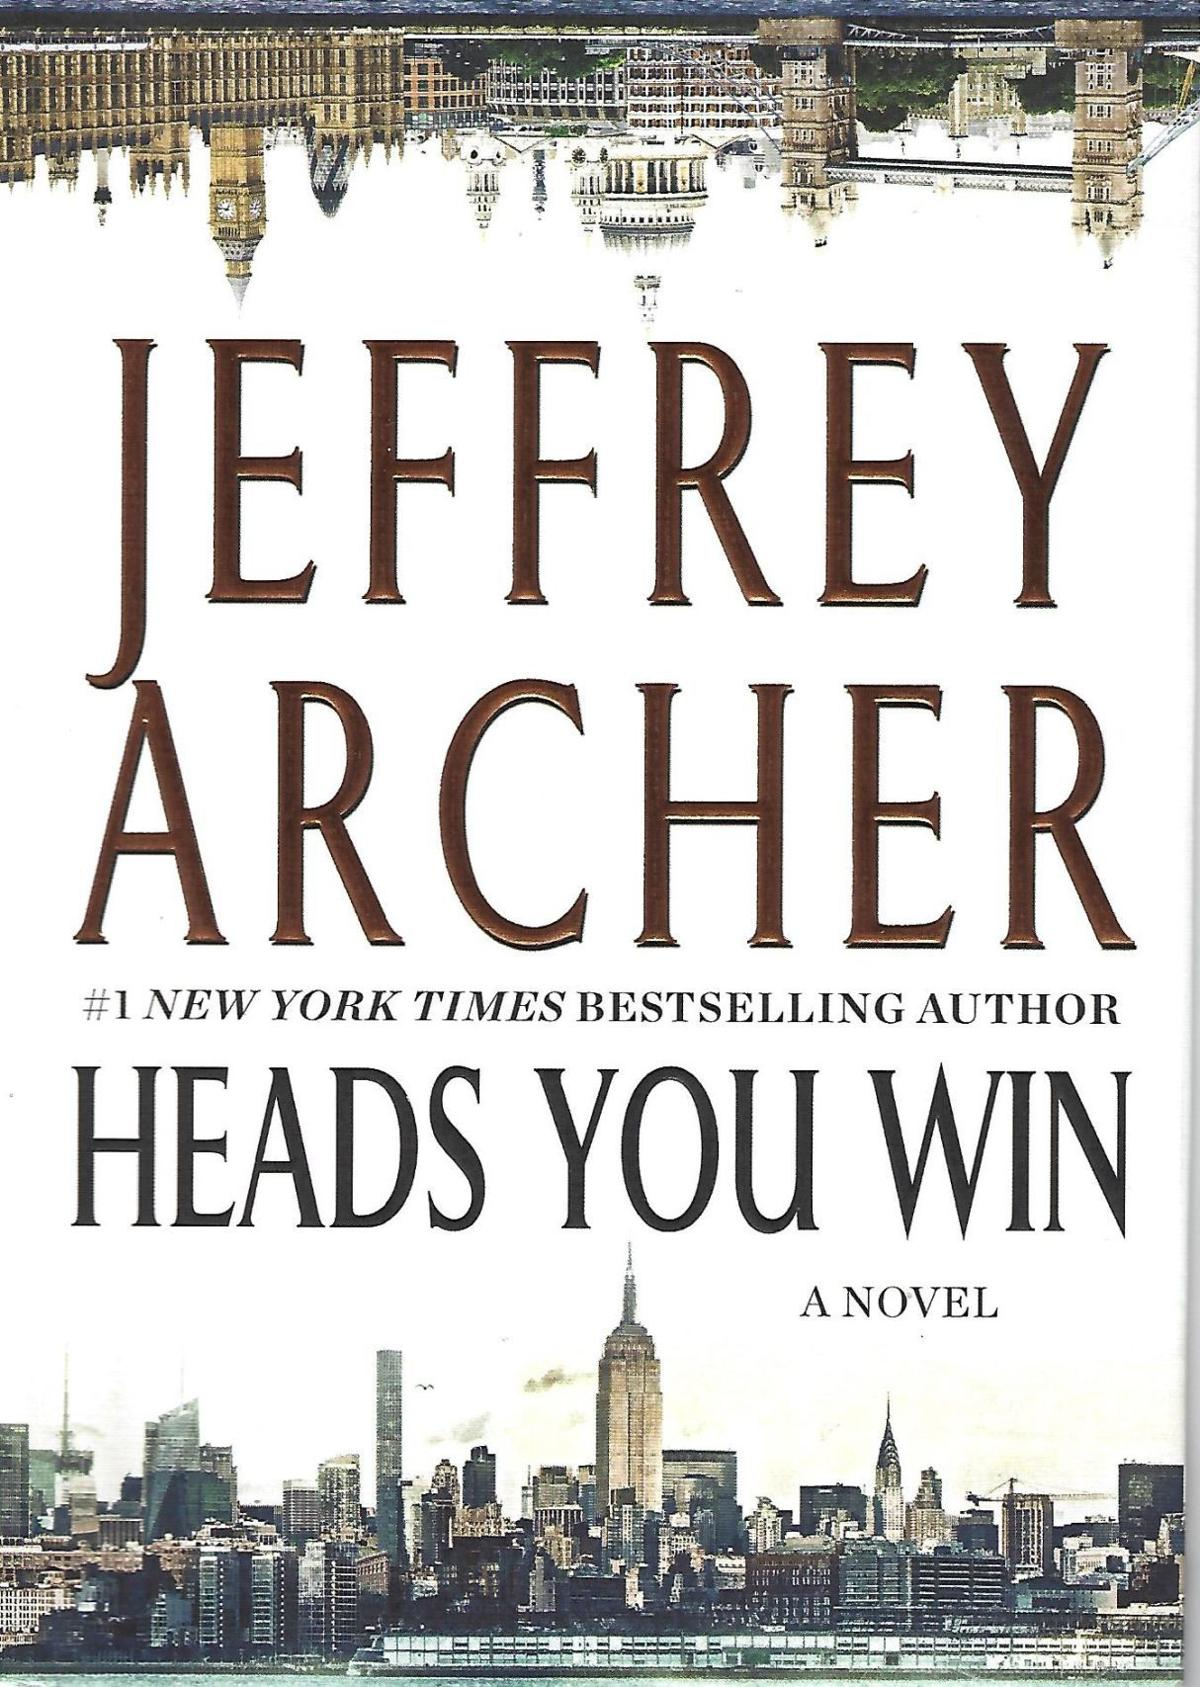 20190502-gm-books-Cover of HEADS YOU WIN.jpg